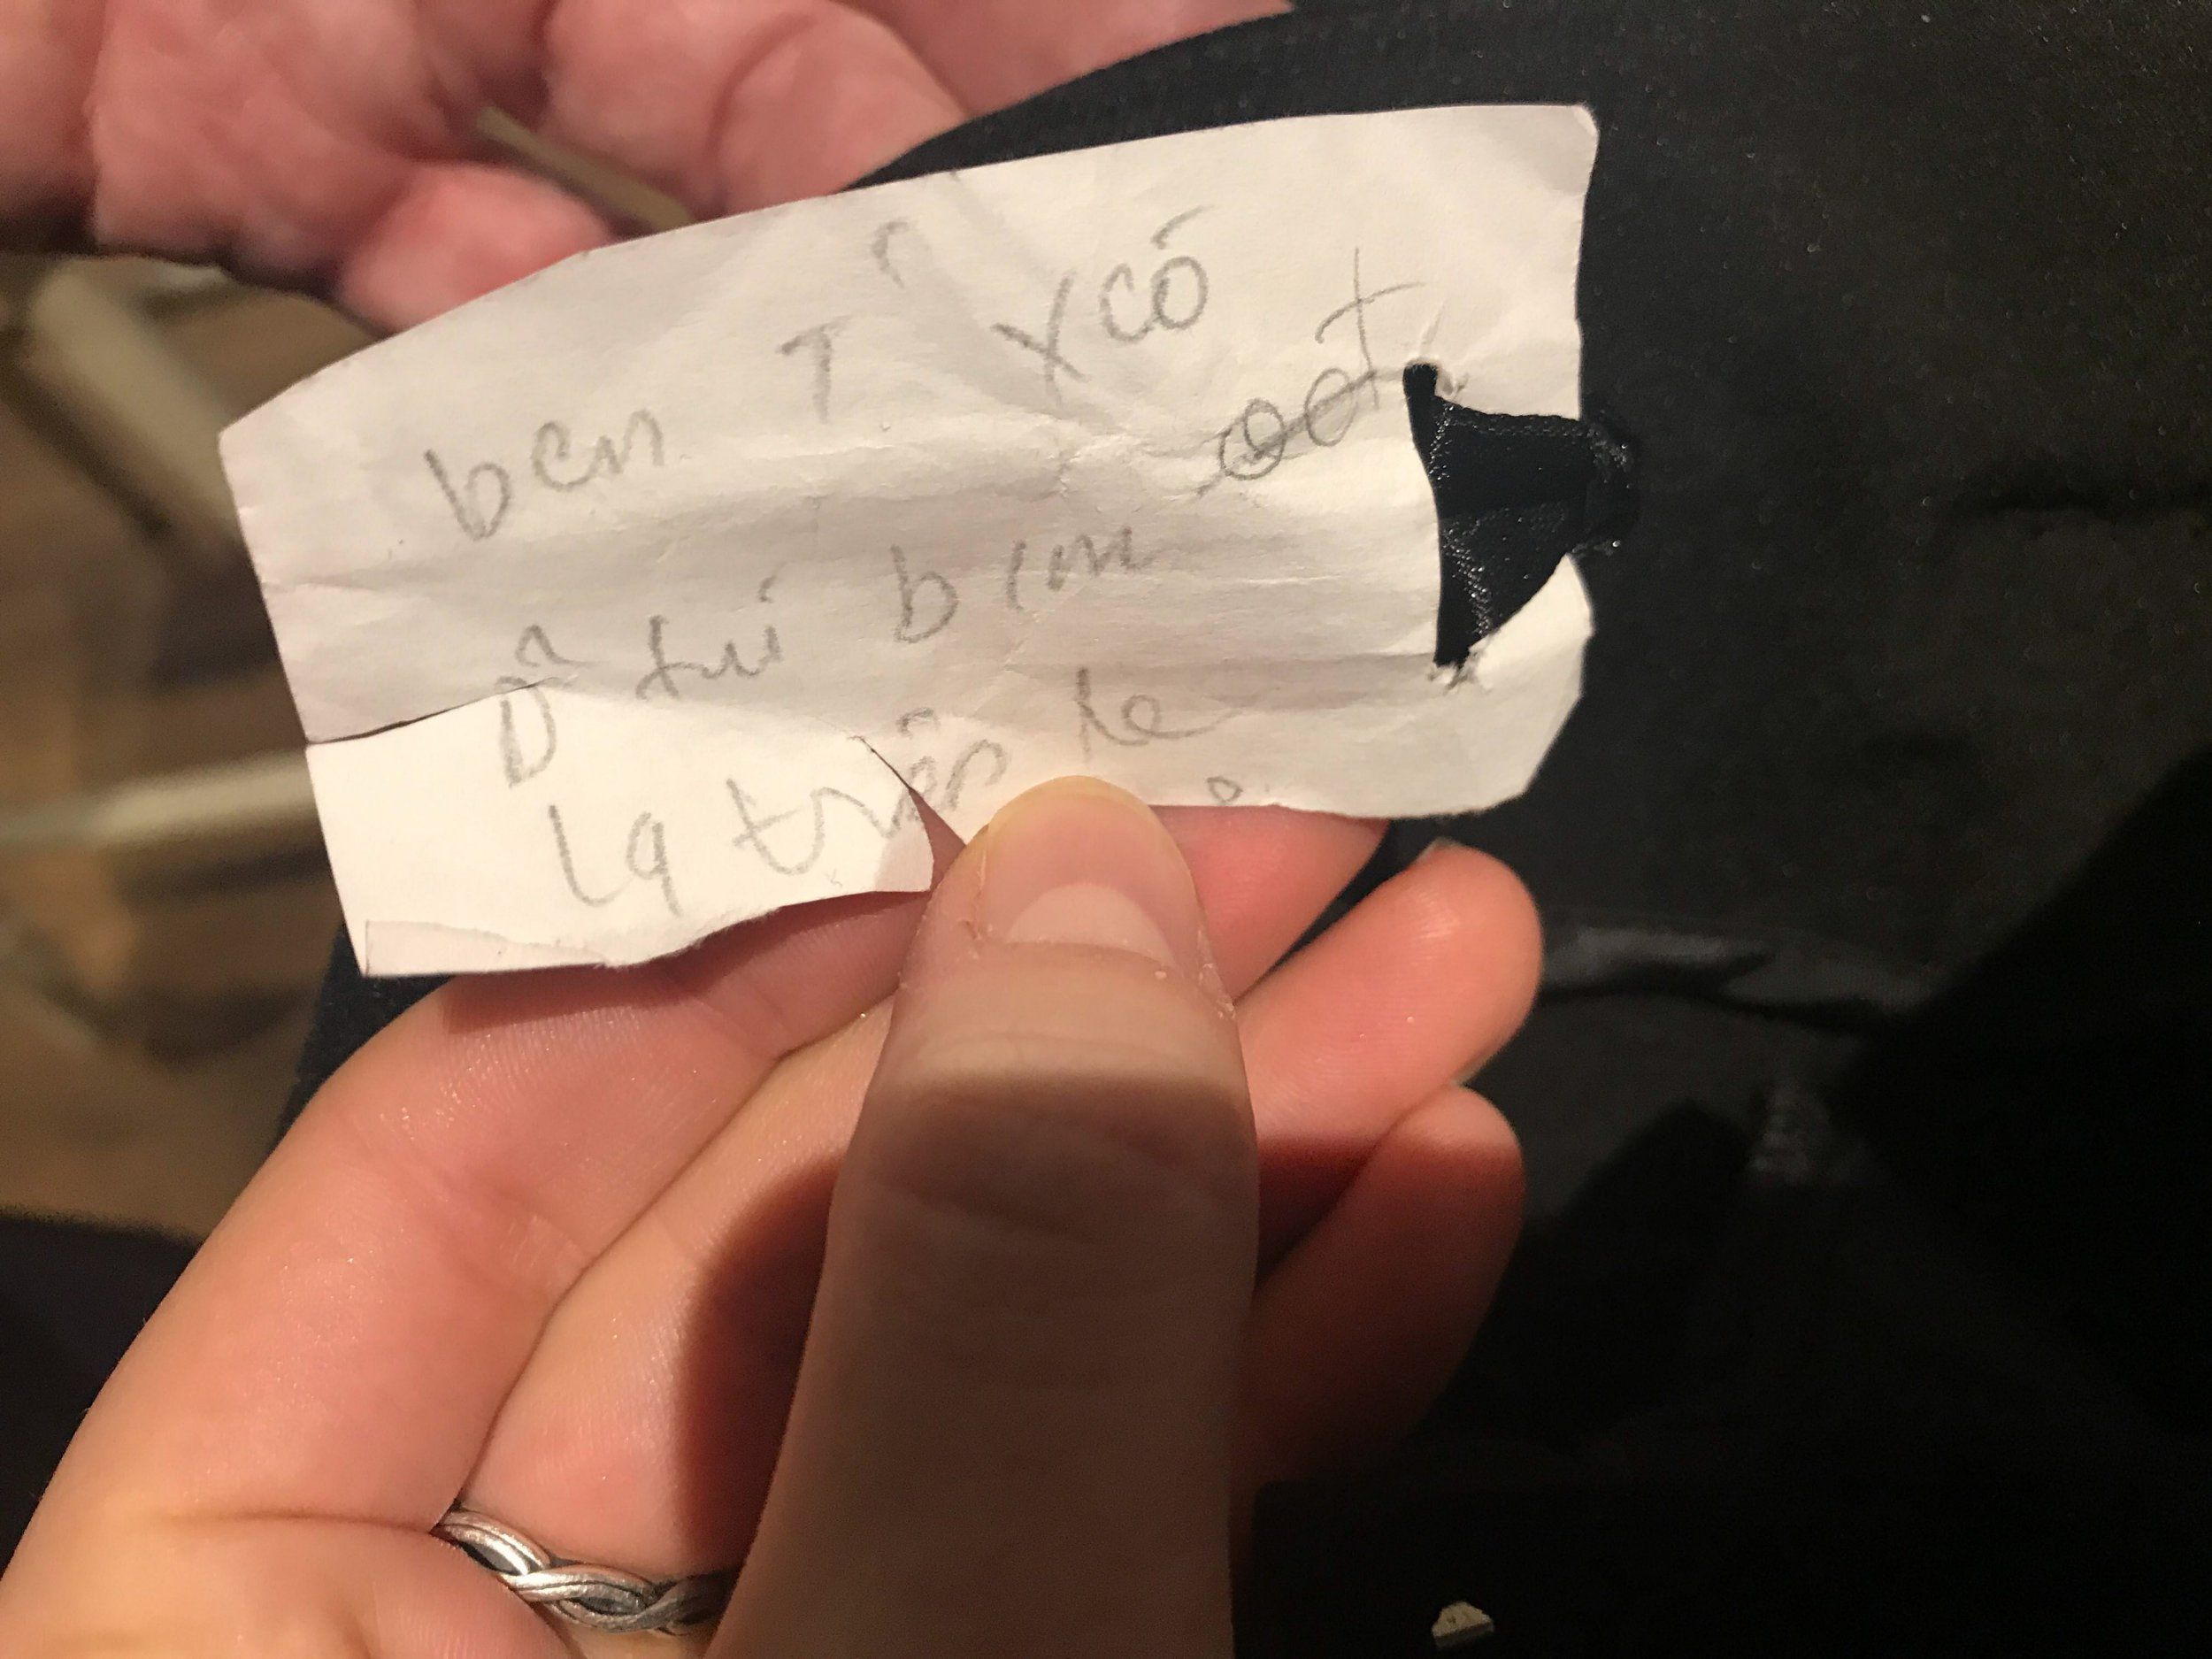 Note inside pair of jeans